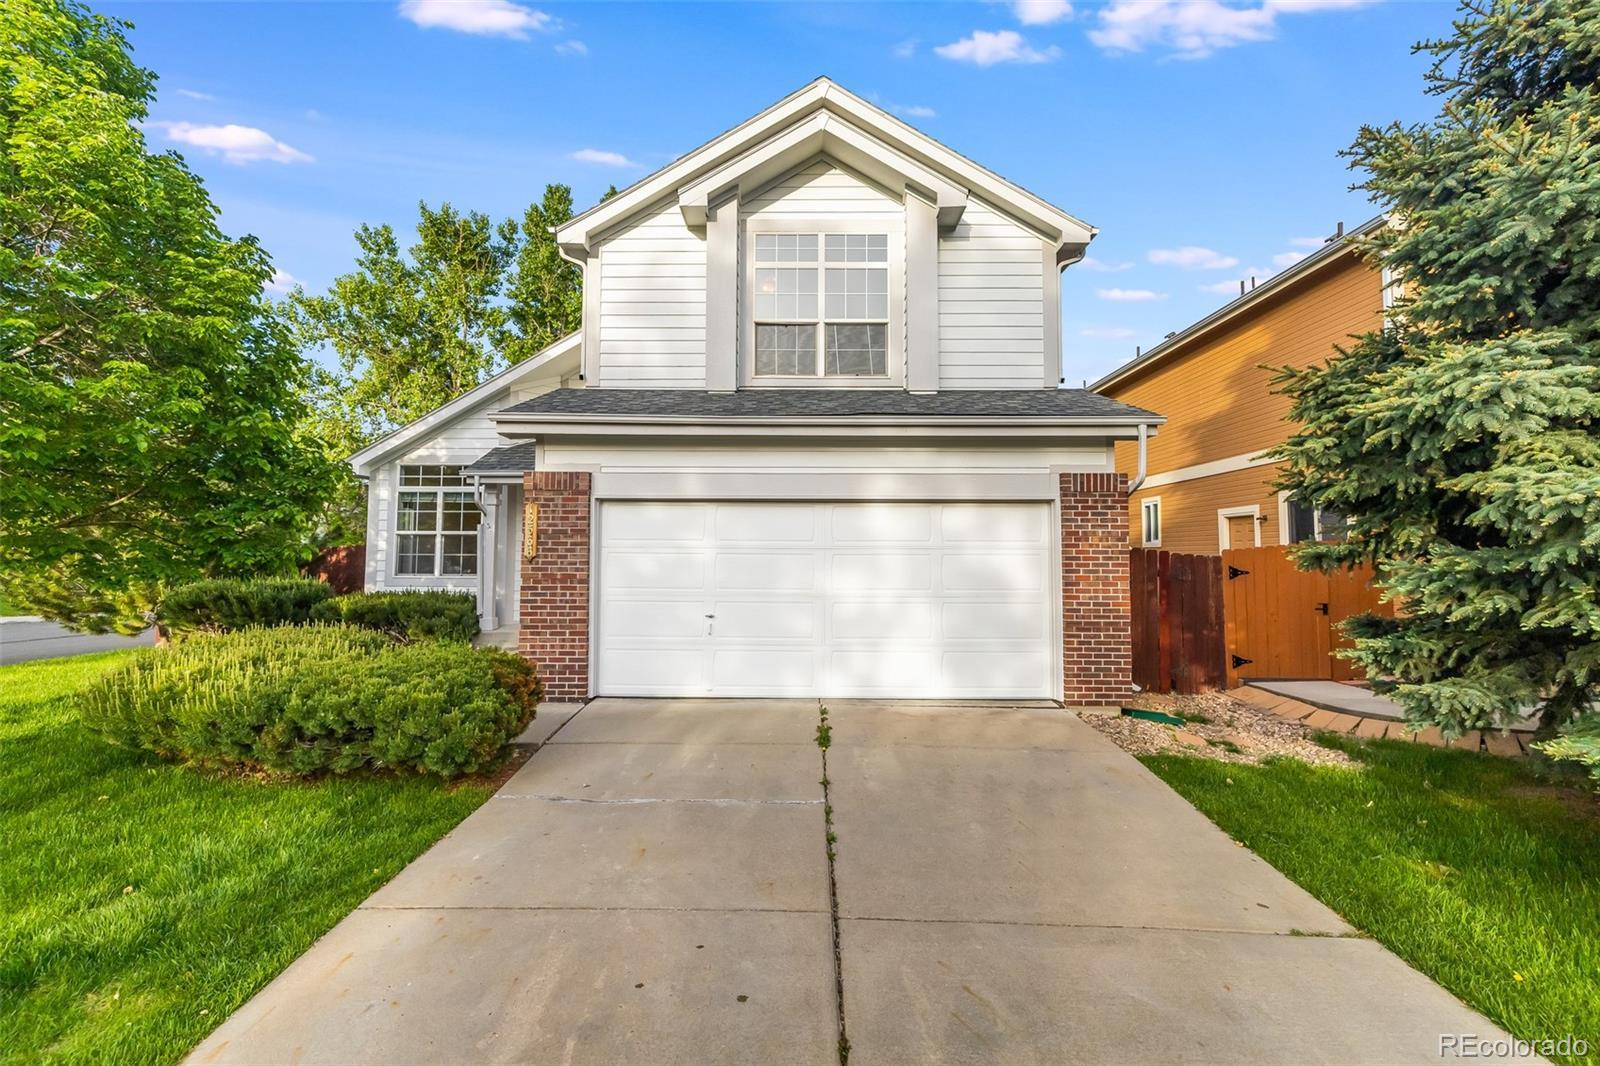 12566 Forest View Street, Broomfield, CO 80020 - #: 7543113